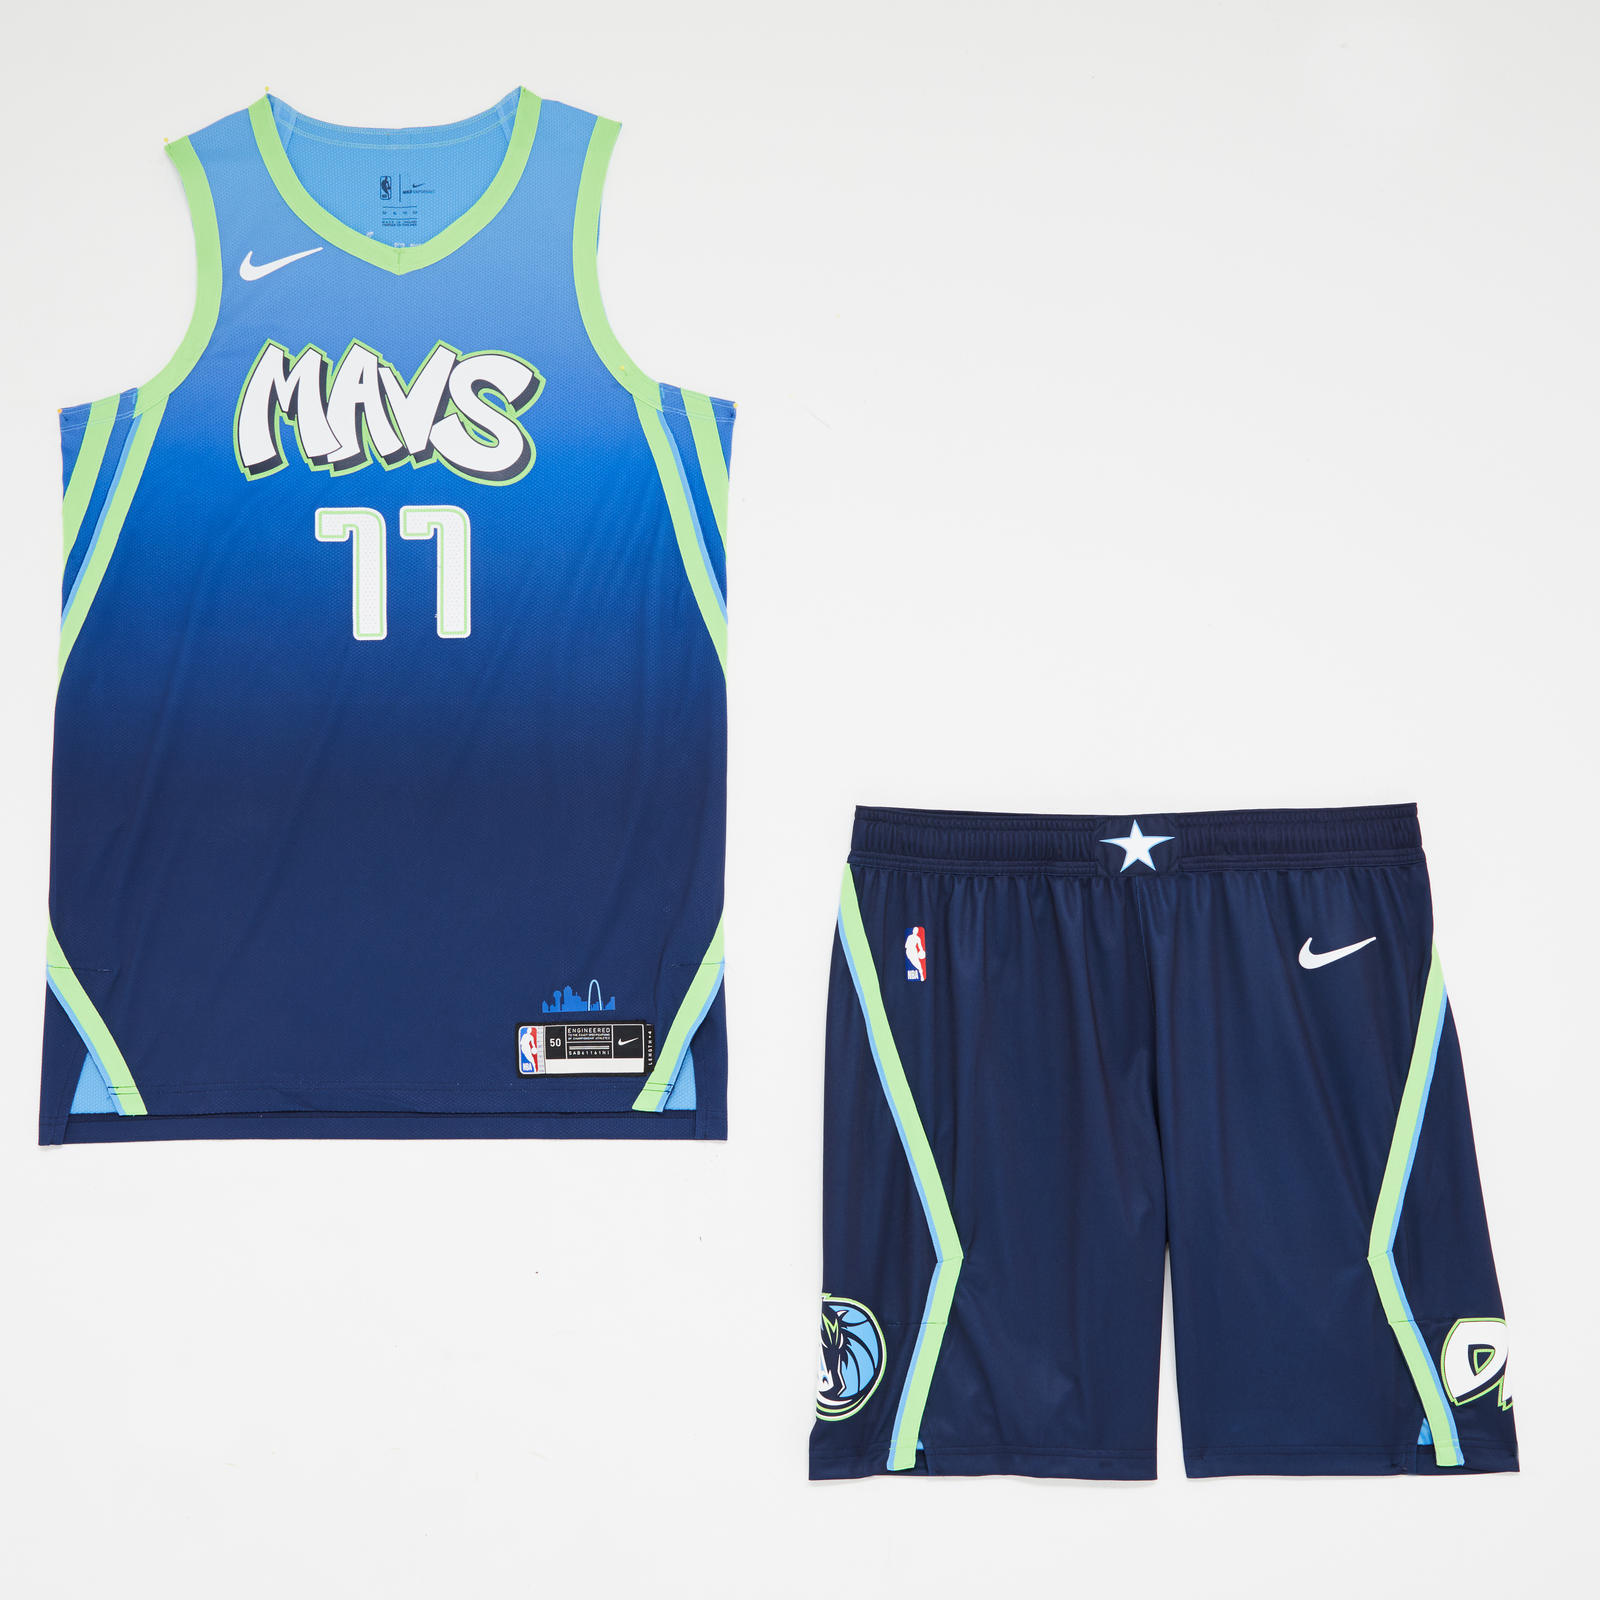 new nba jerseys for sale